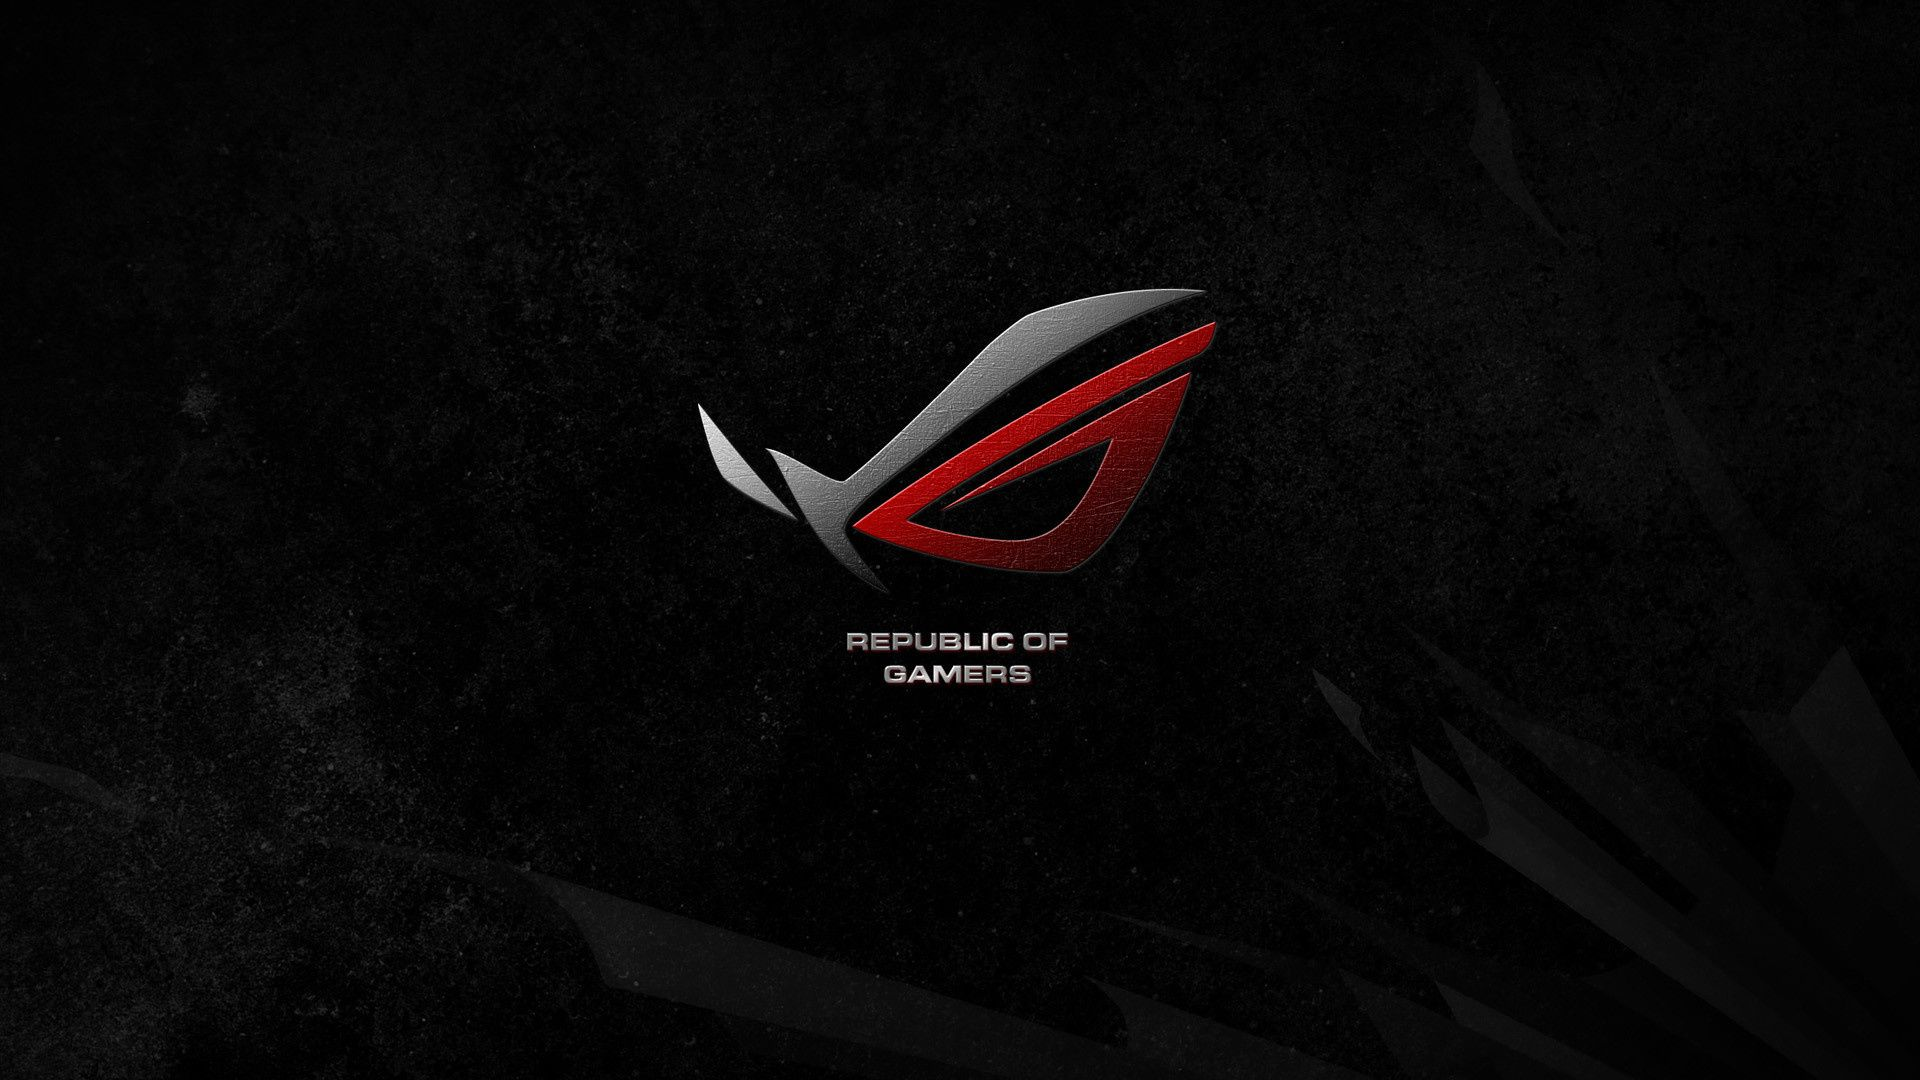 Patreon In 2021 Wallpaper Pc Rog Wallpapers For Pc Rog Wallpaper